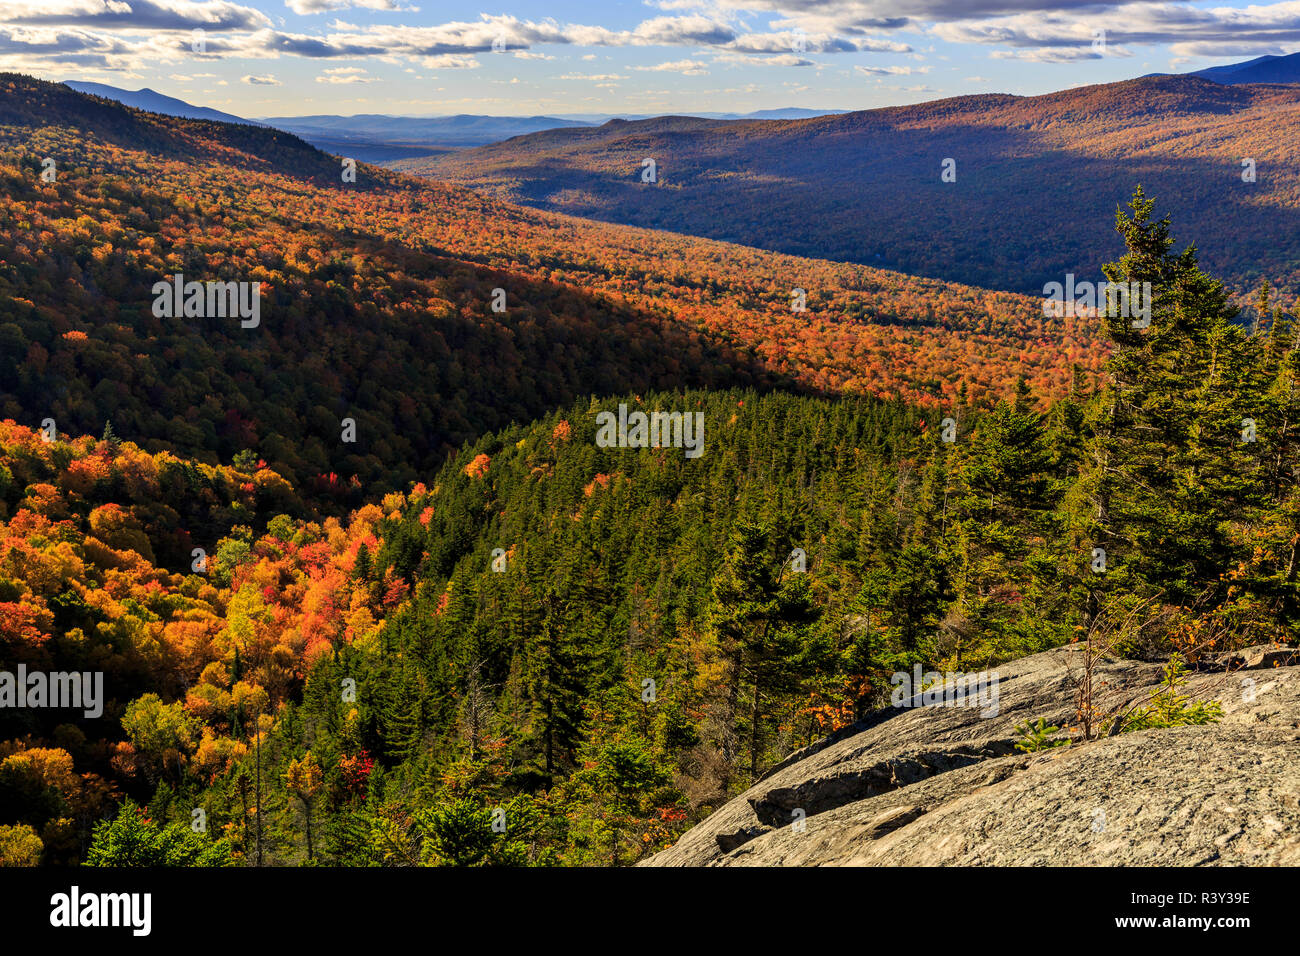 New Hampshire's White Mountain National Forest. Stock Photo